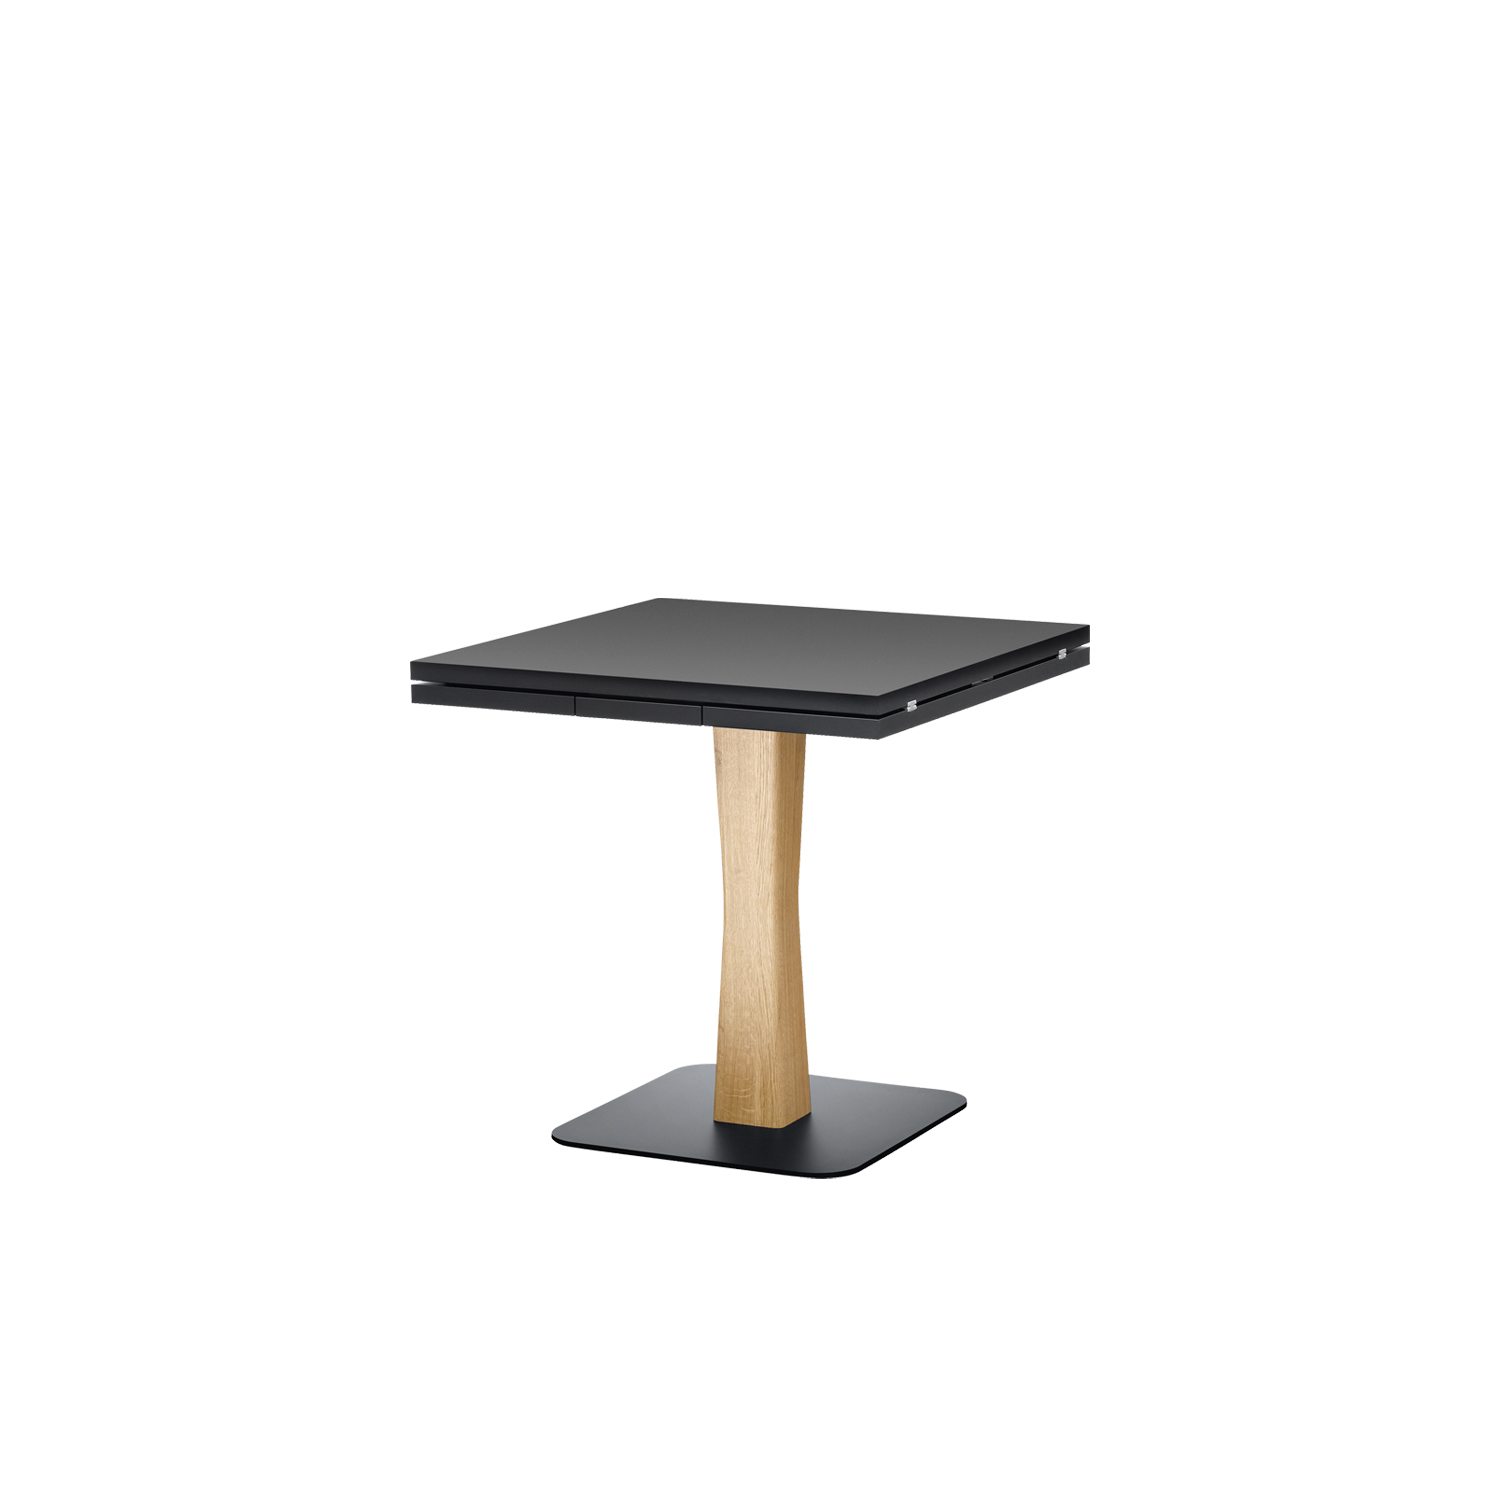 Gualtiero Extendable Table - Gualtiero is designed for smaller, more intimate spaces, from bistros to small apartments, finding the spot for an iconic, practical table.